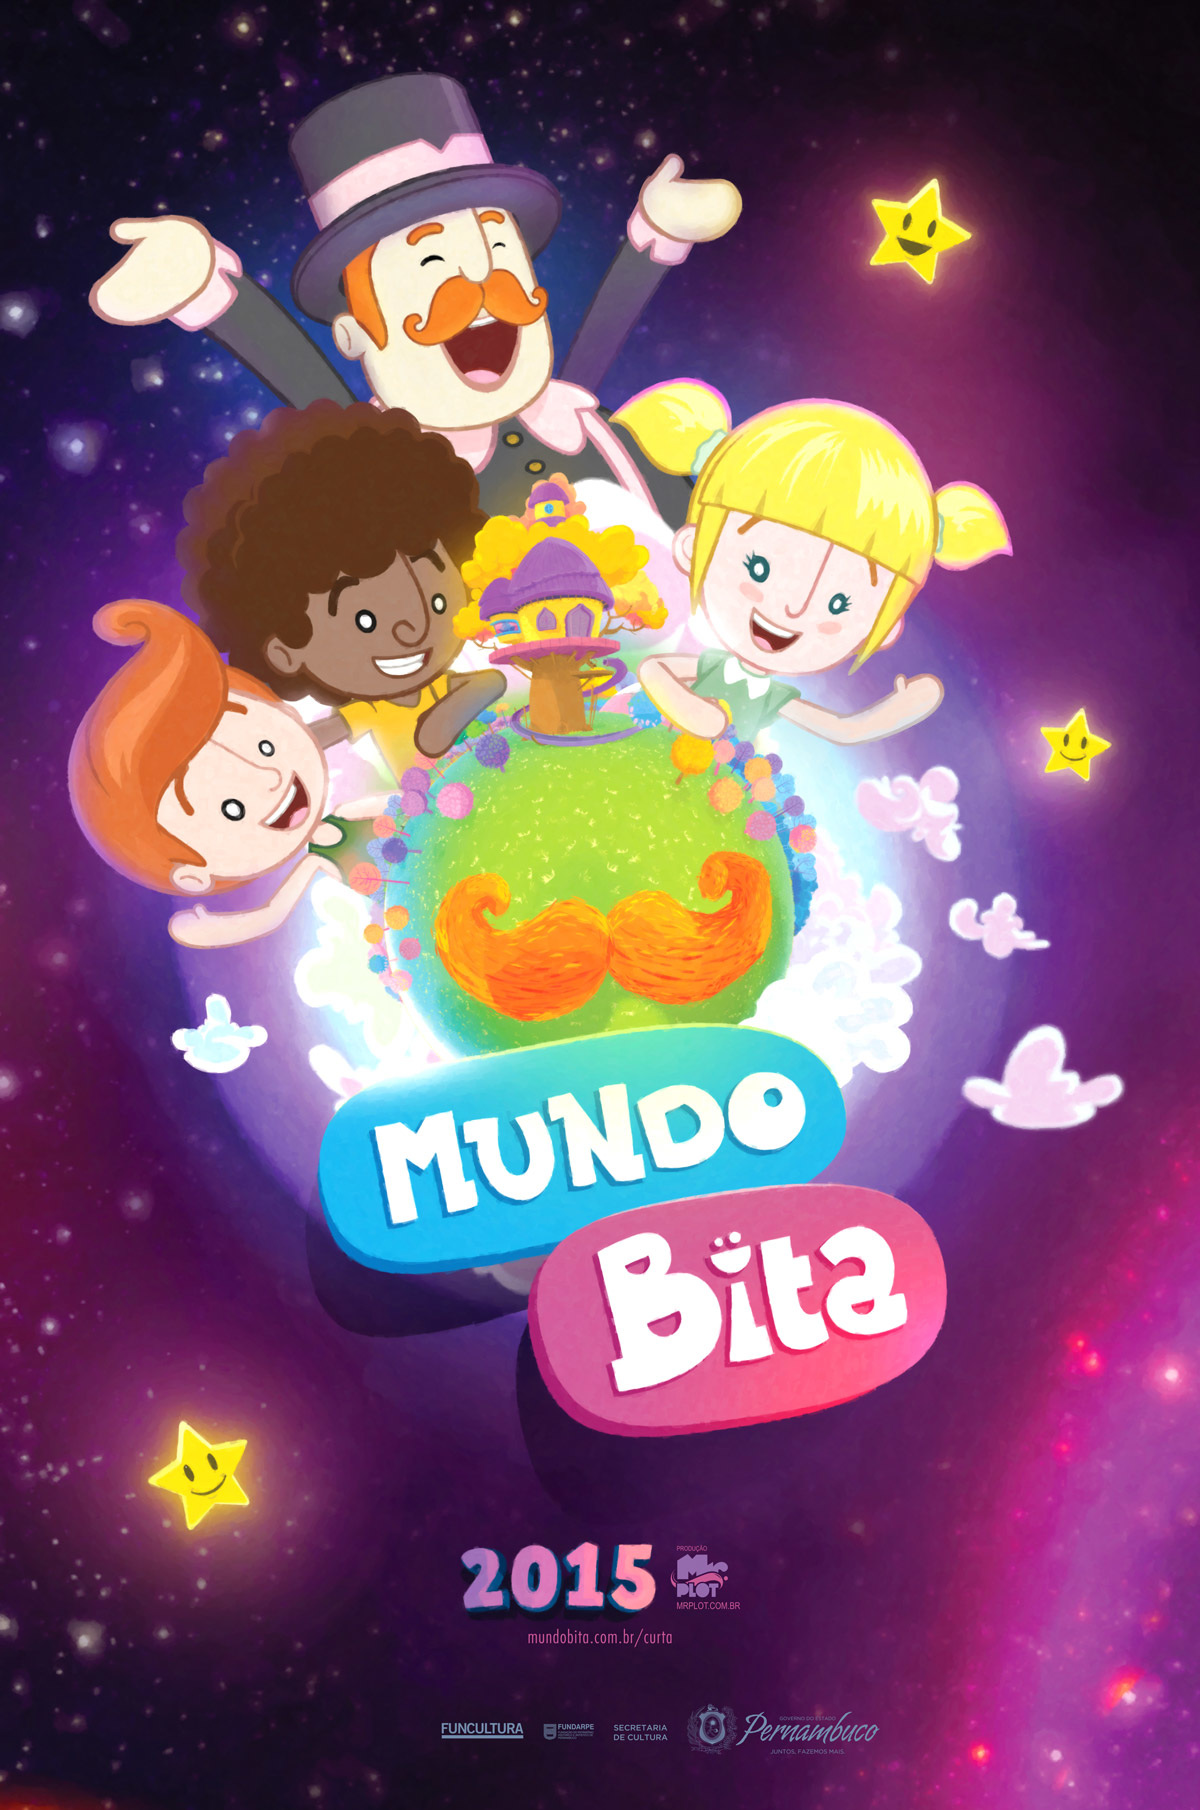 mundo bita the shortmovie 2015 brun bruno